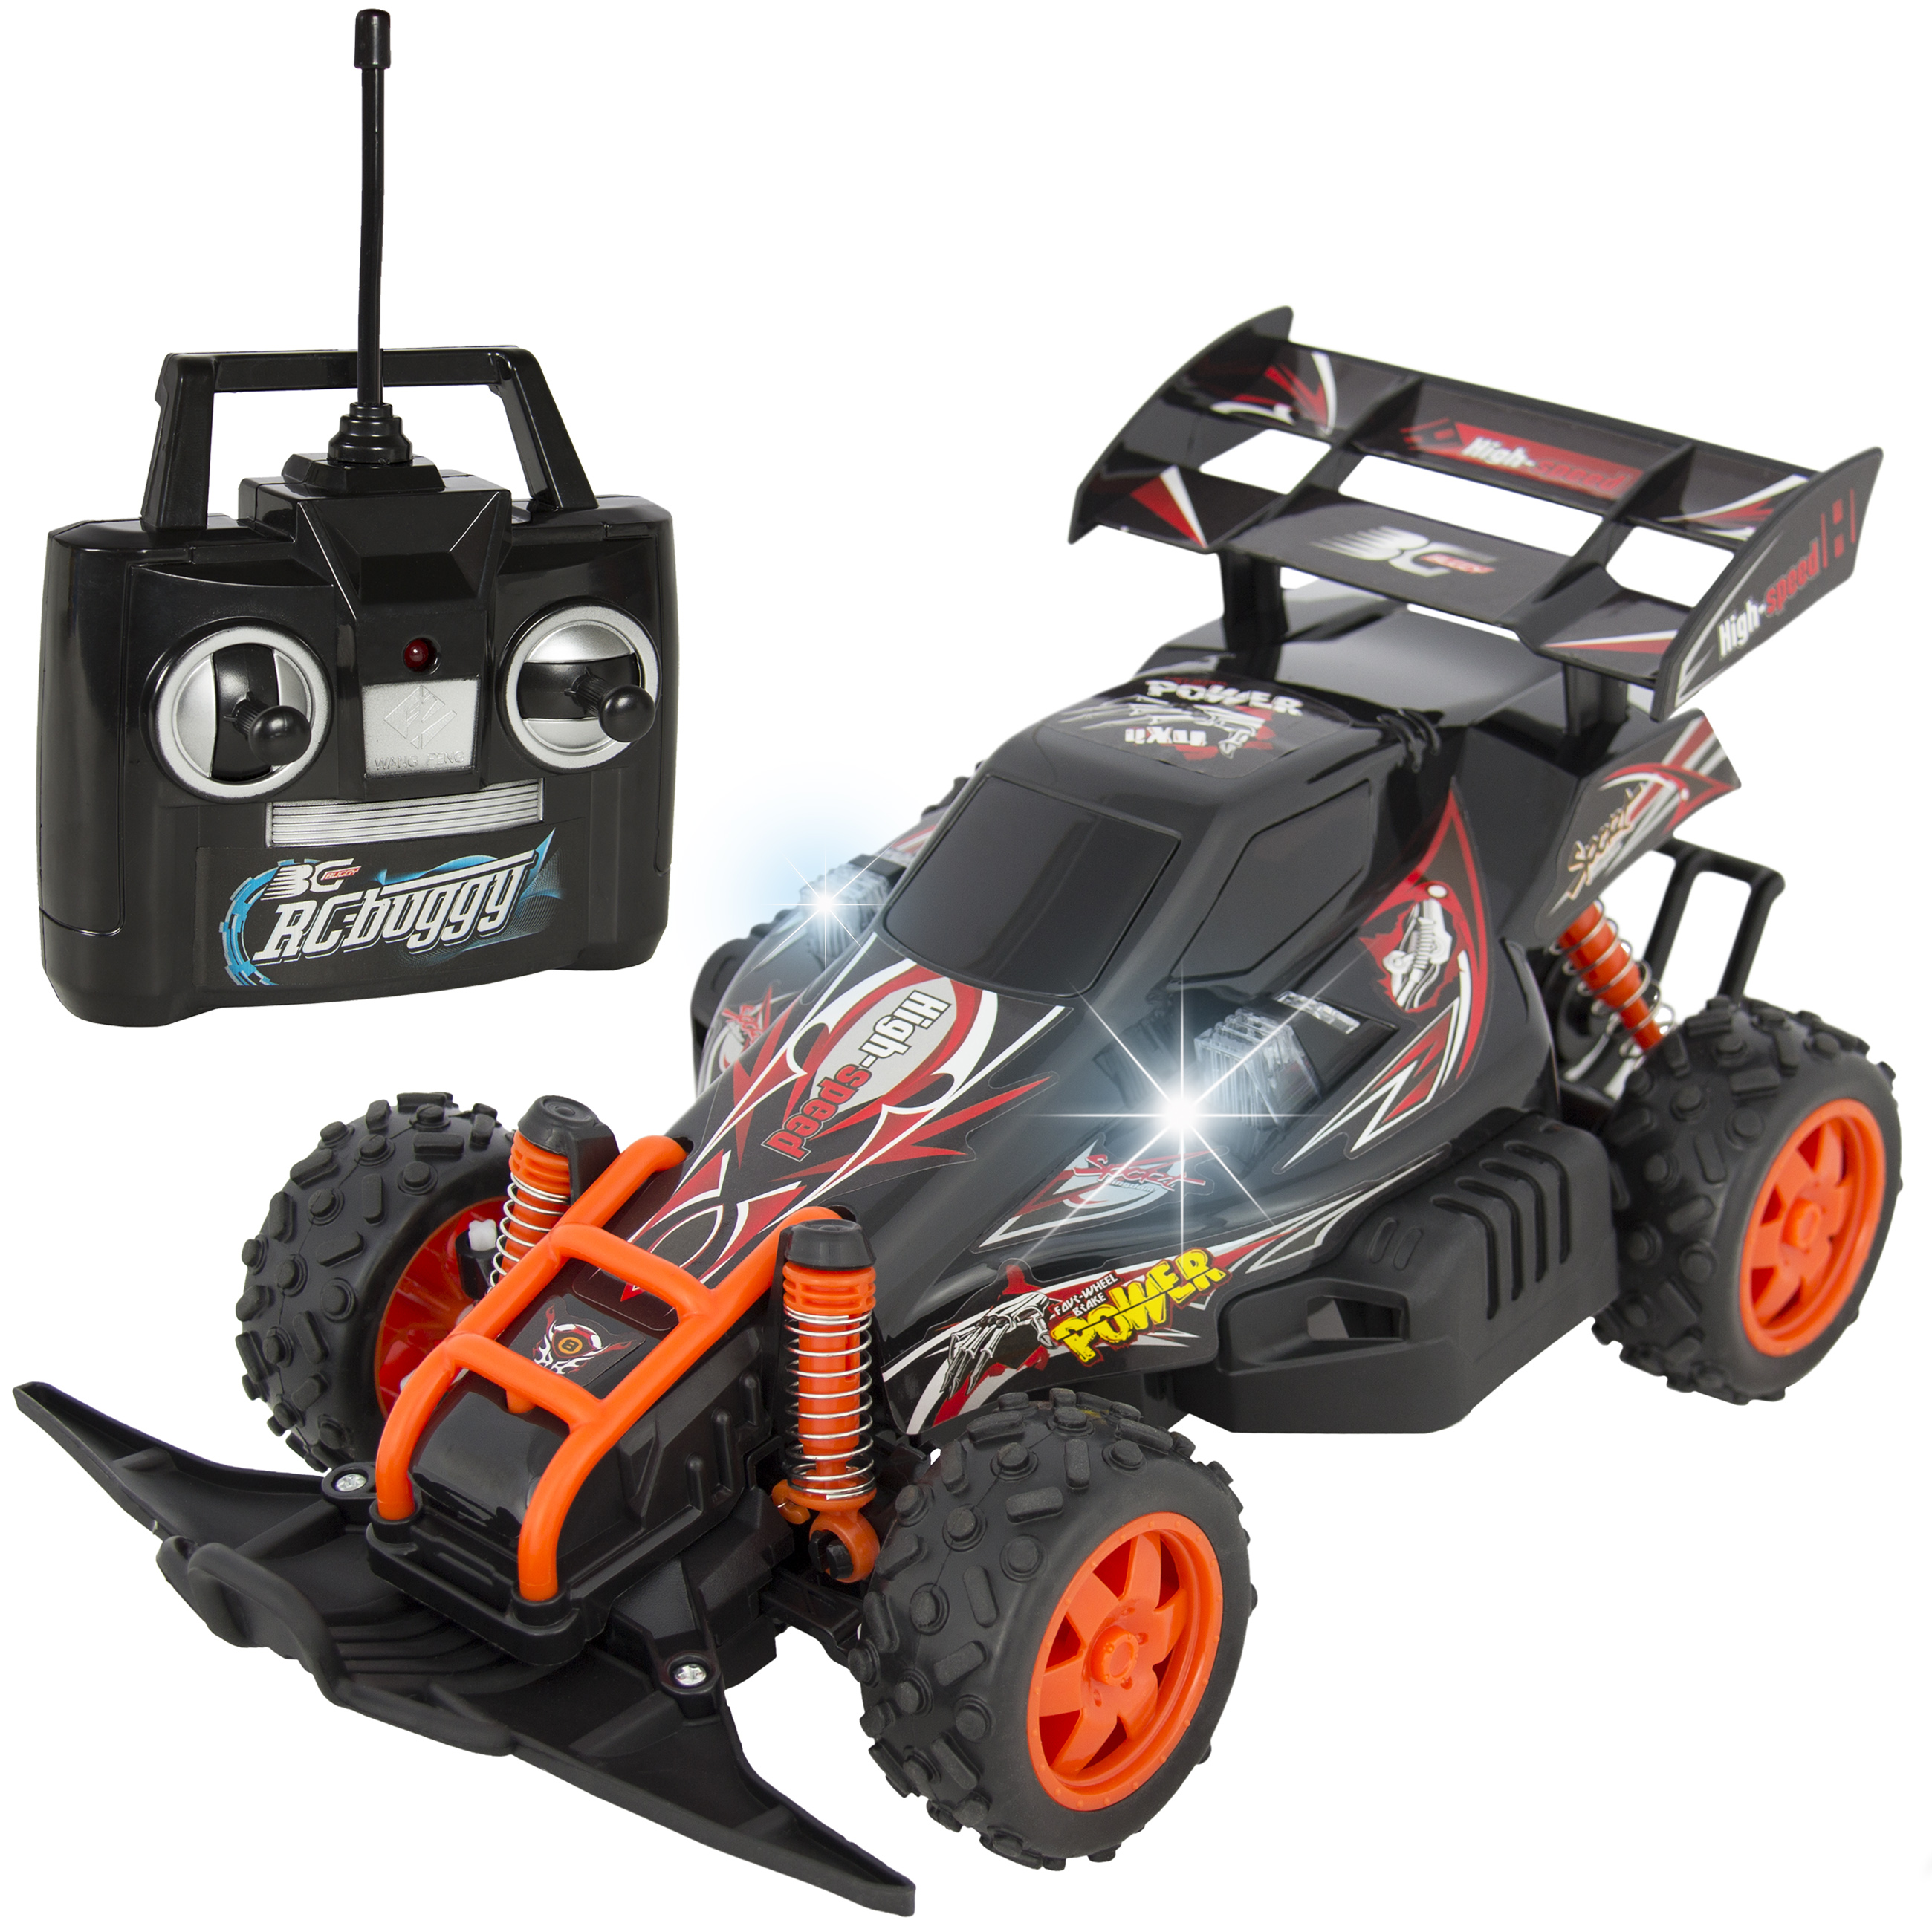 Best Choice Products High Speed RC Race Car Buggy w/ 4WD, Remote Control, Battery and Charger, LED Lights - Black/Red